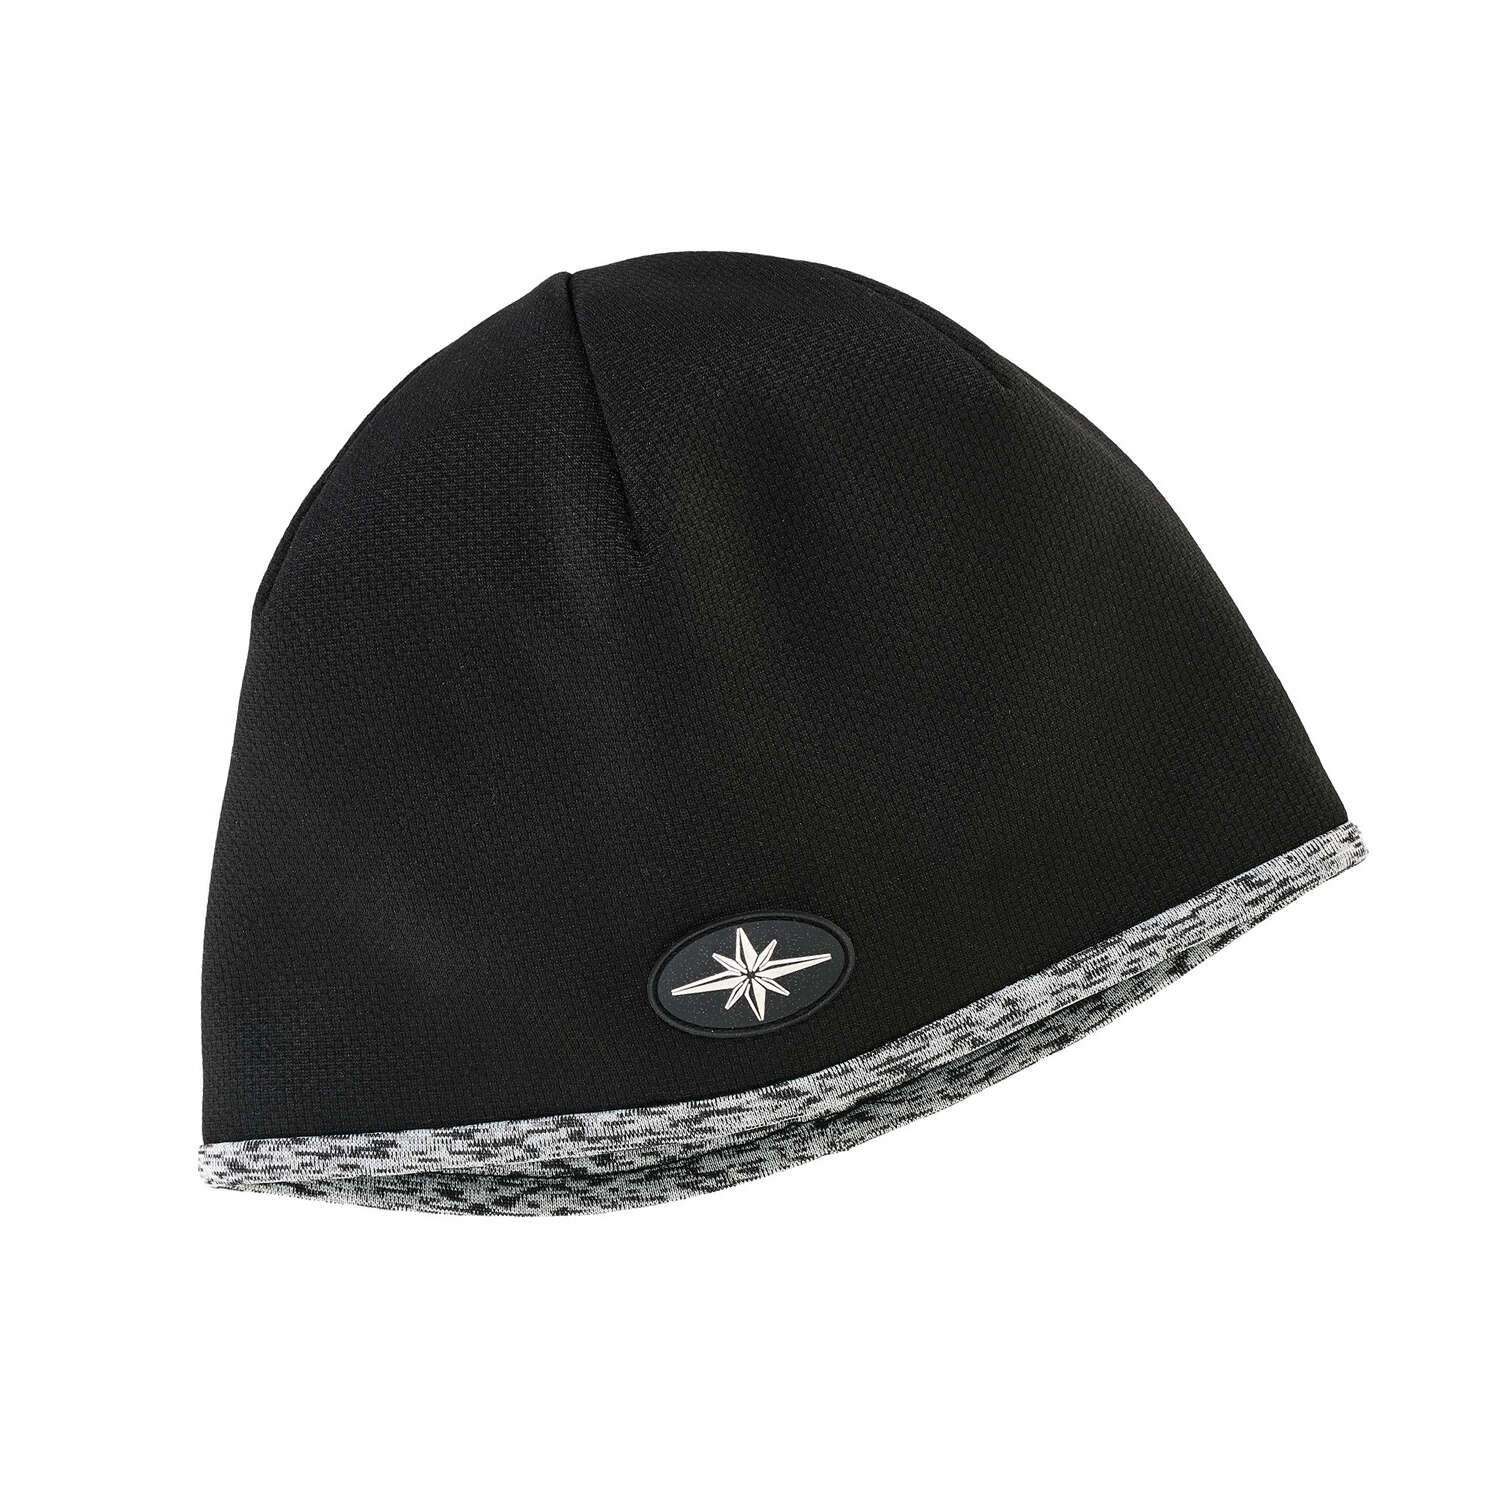 Men's Tech Mesh Beanie with Ellipse, Black